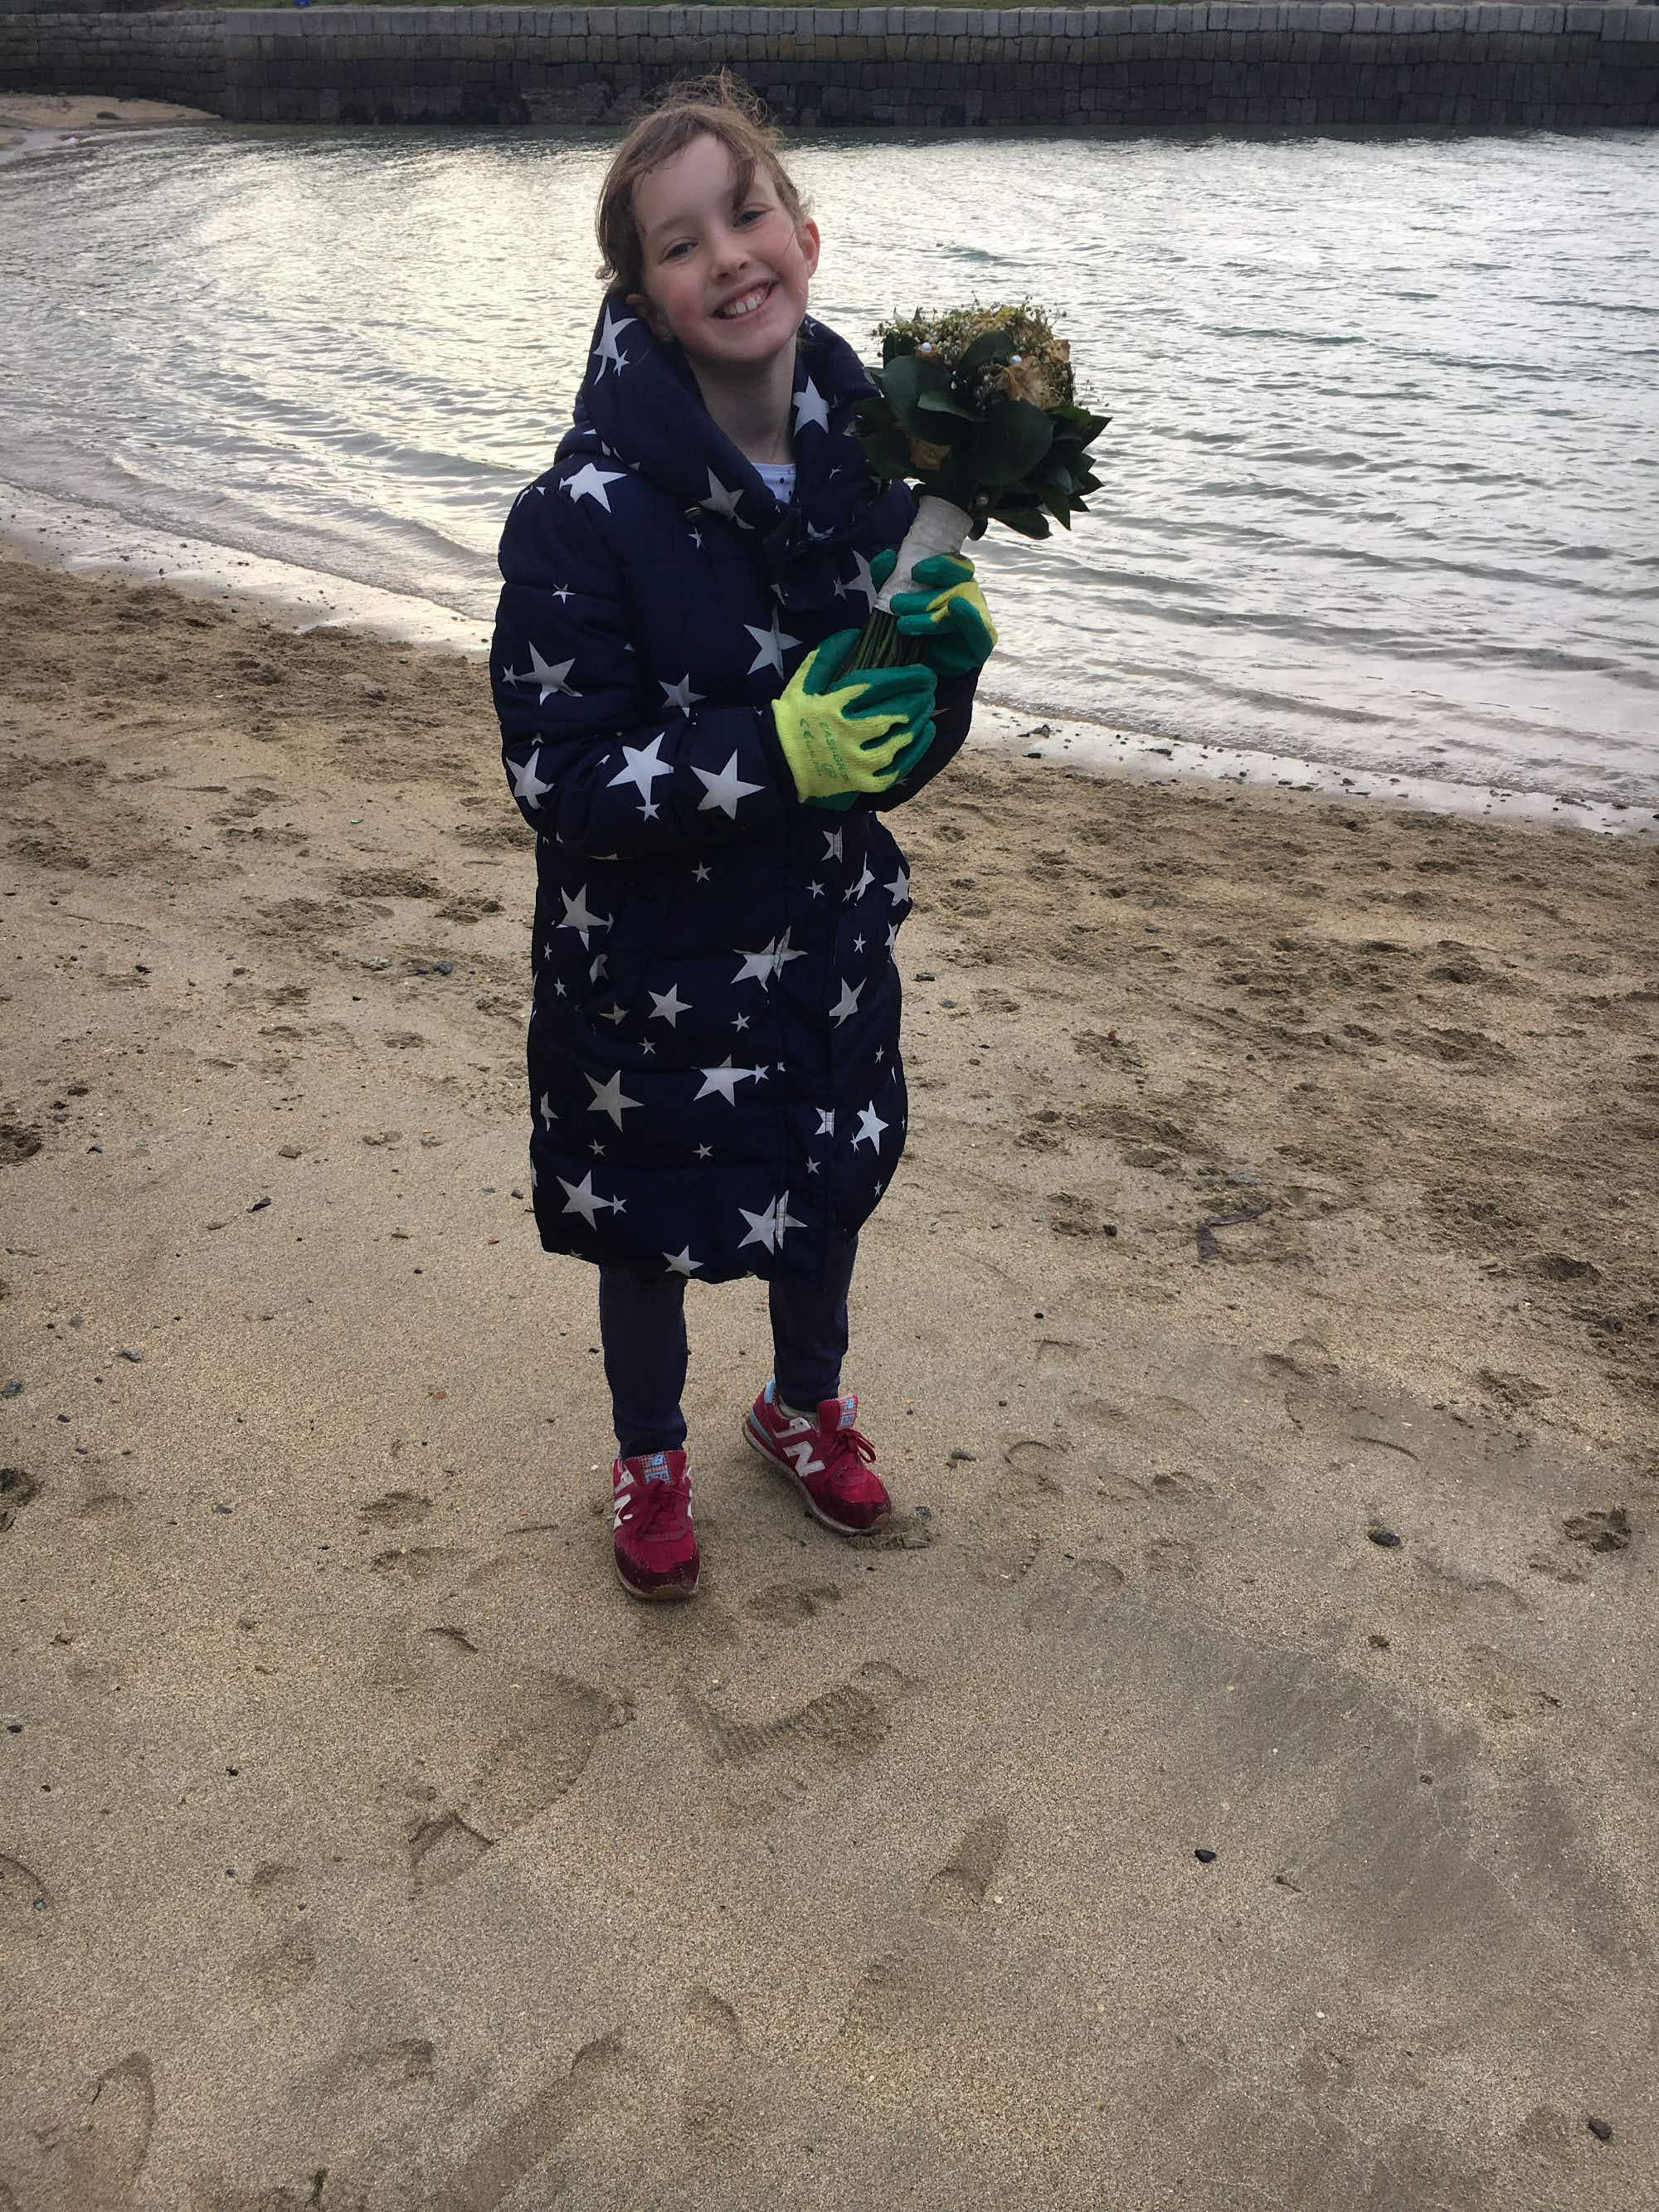 One 10-year-old Dublin girl is passionately leading a beach cleaning project in her hometown